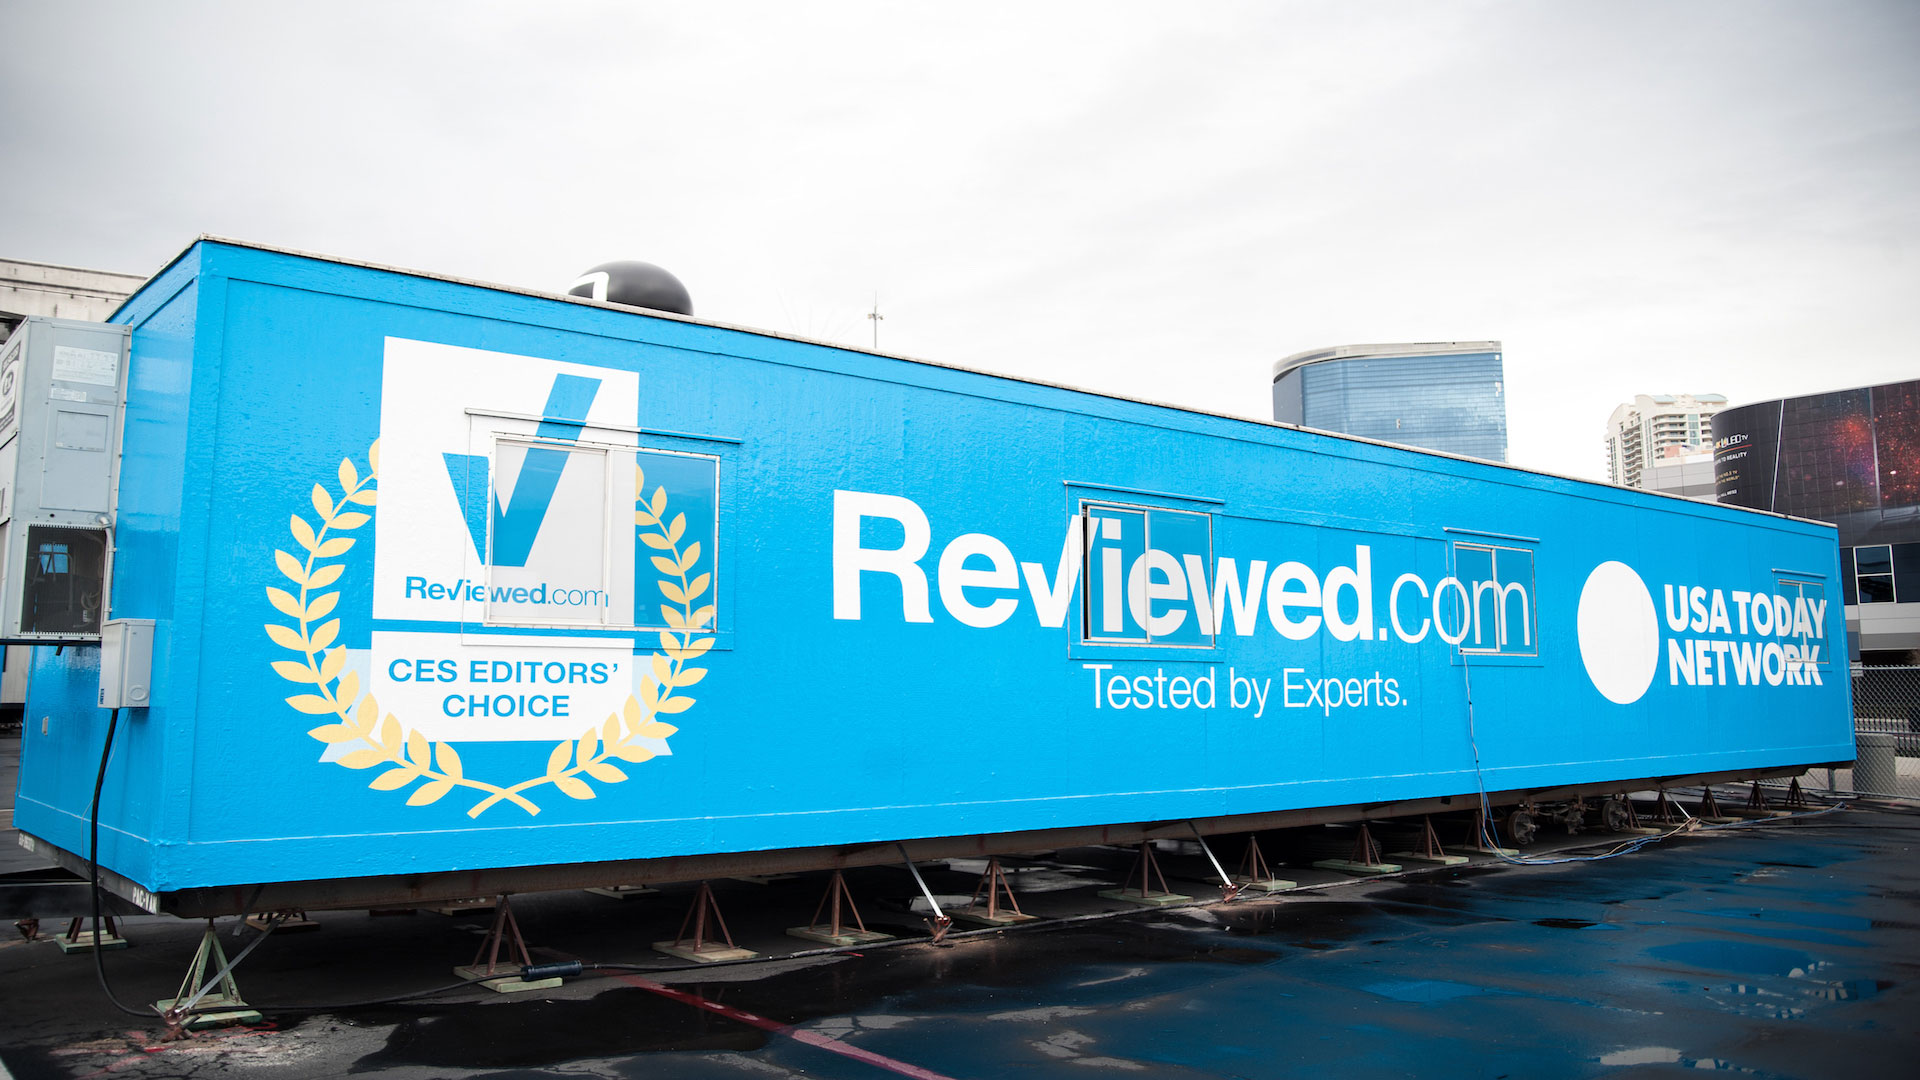 To see all of our CES Editors' Choice award winners, head over to Reviewed.com.